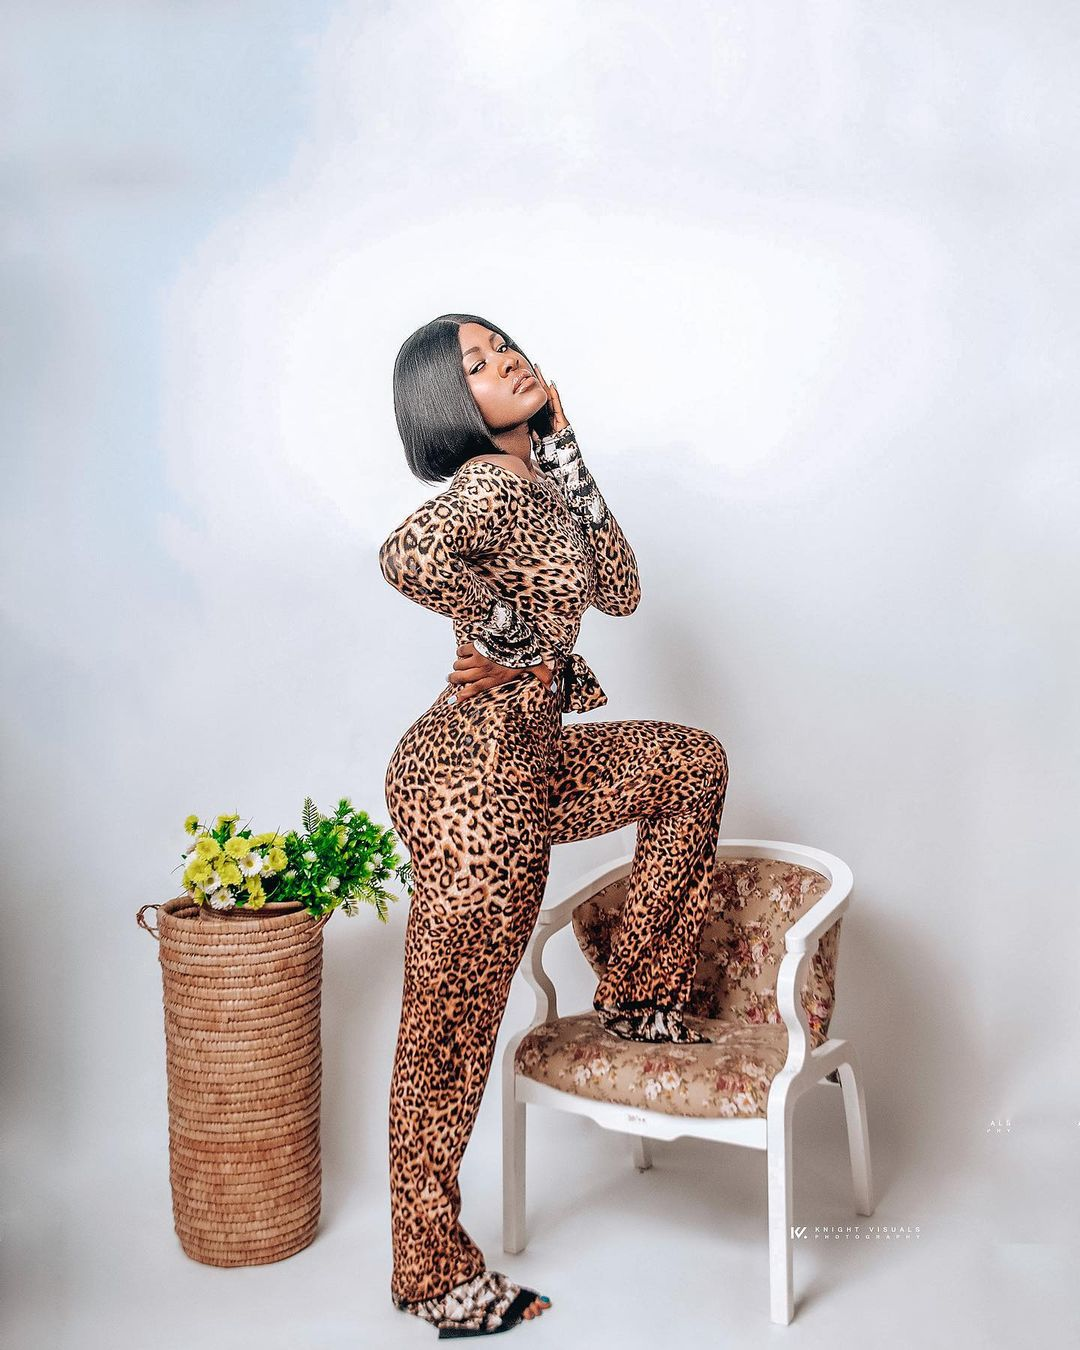 Alex Unusall Keeps It Cool With A JumpsuitAlex Unusual Keeps It Cool With A Jumpsuit